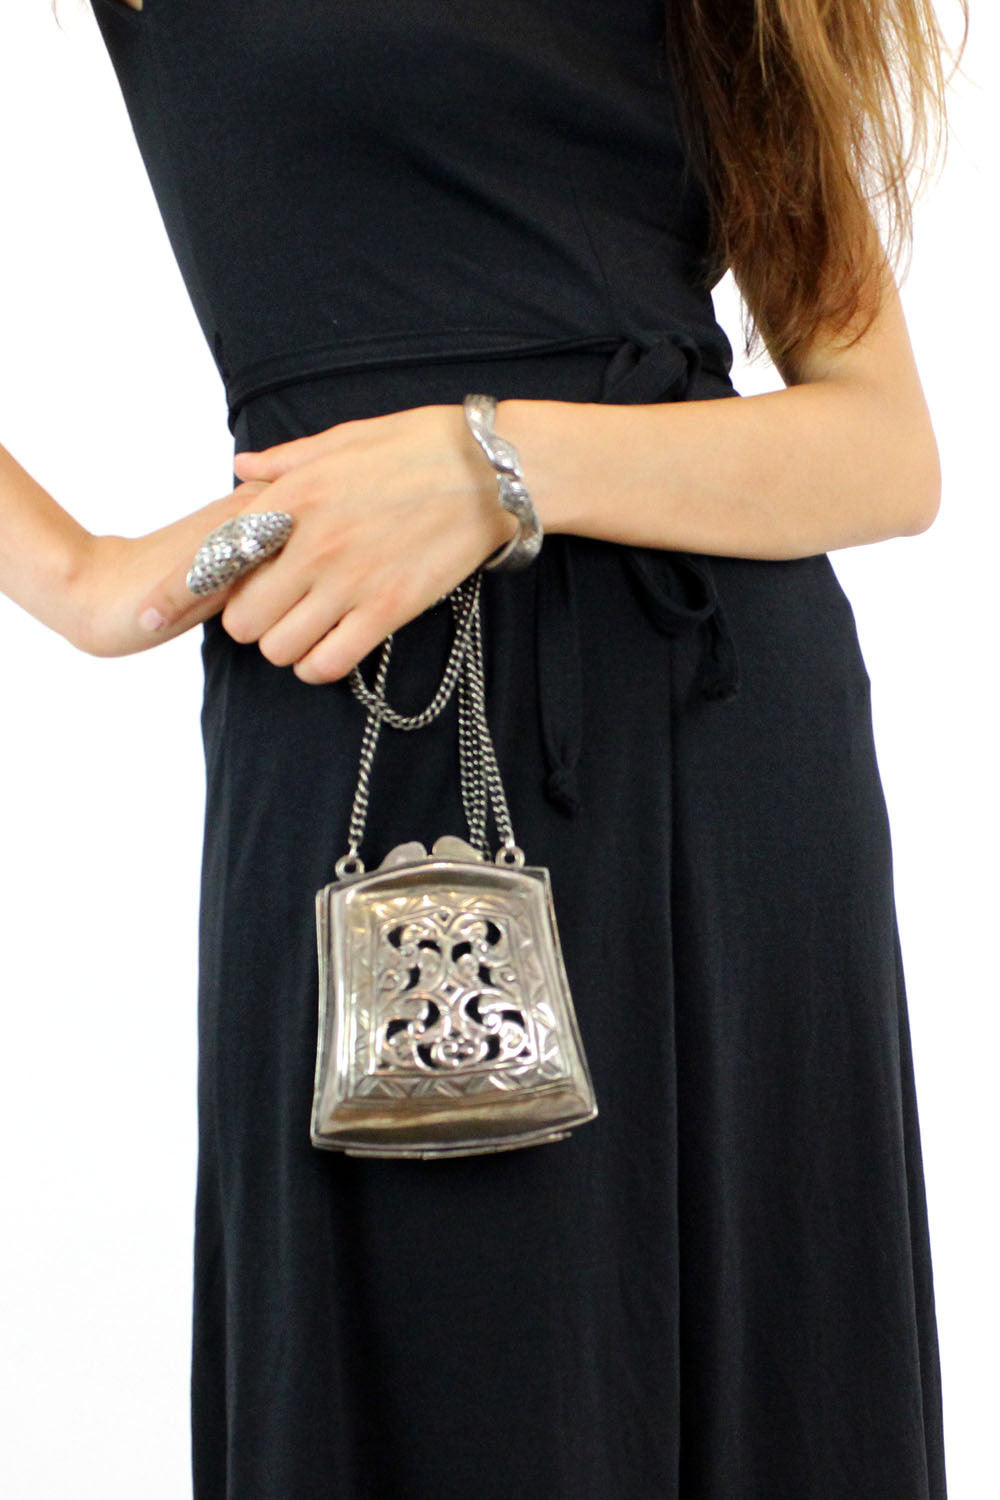 Silver filigree bag